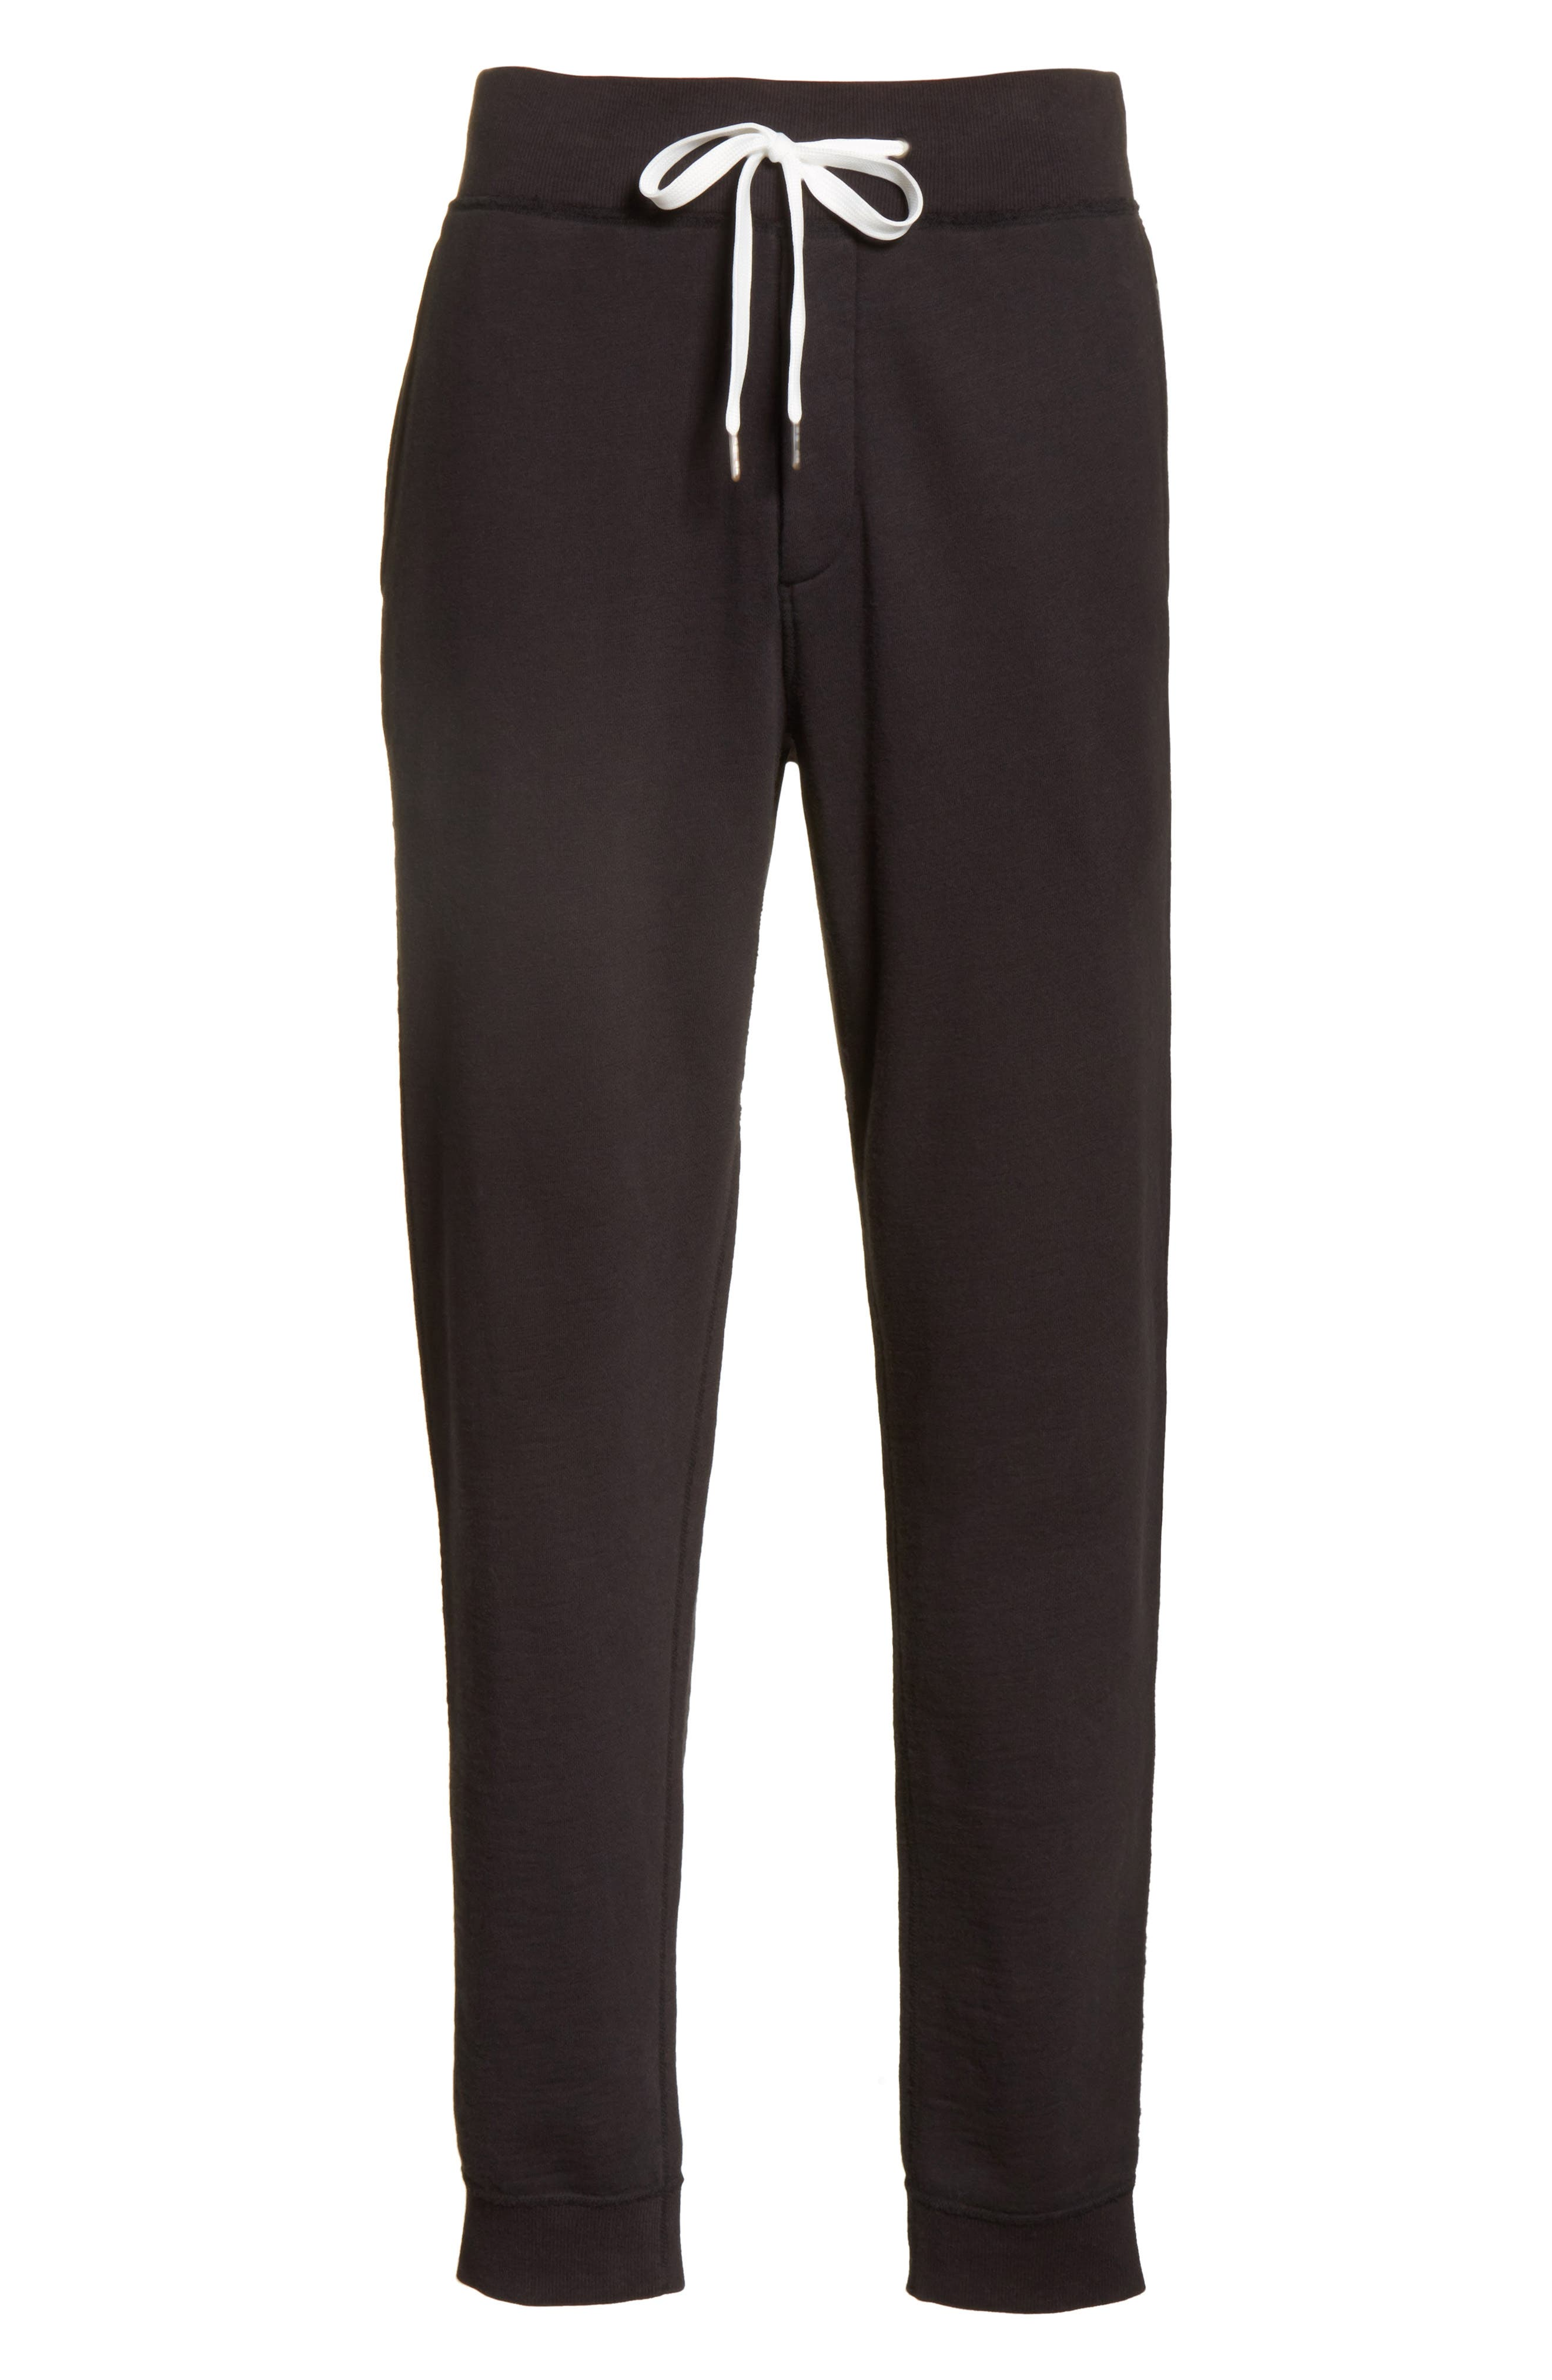 Standard Issue Sweatpants,                             Alternate thumbnail 6, color,                             Black